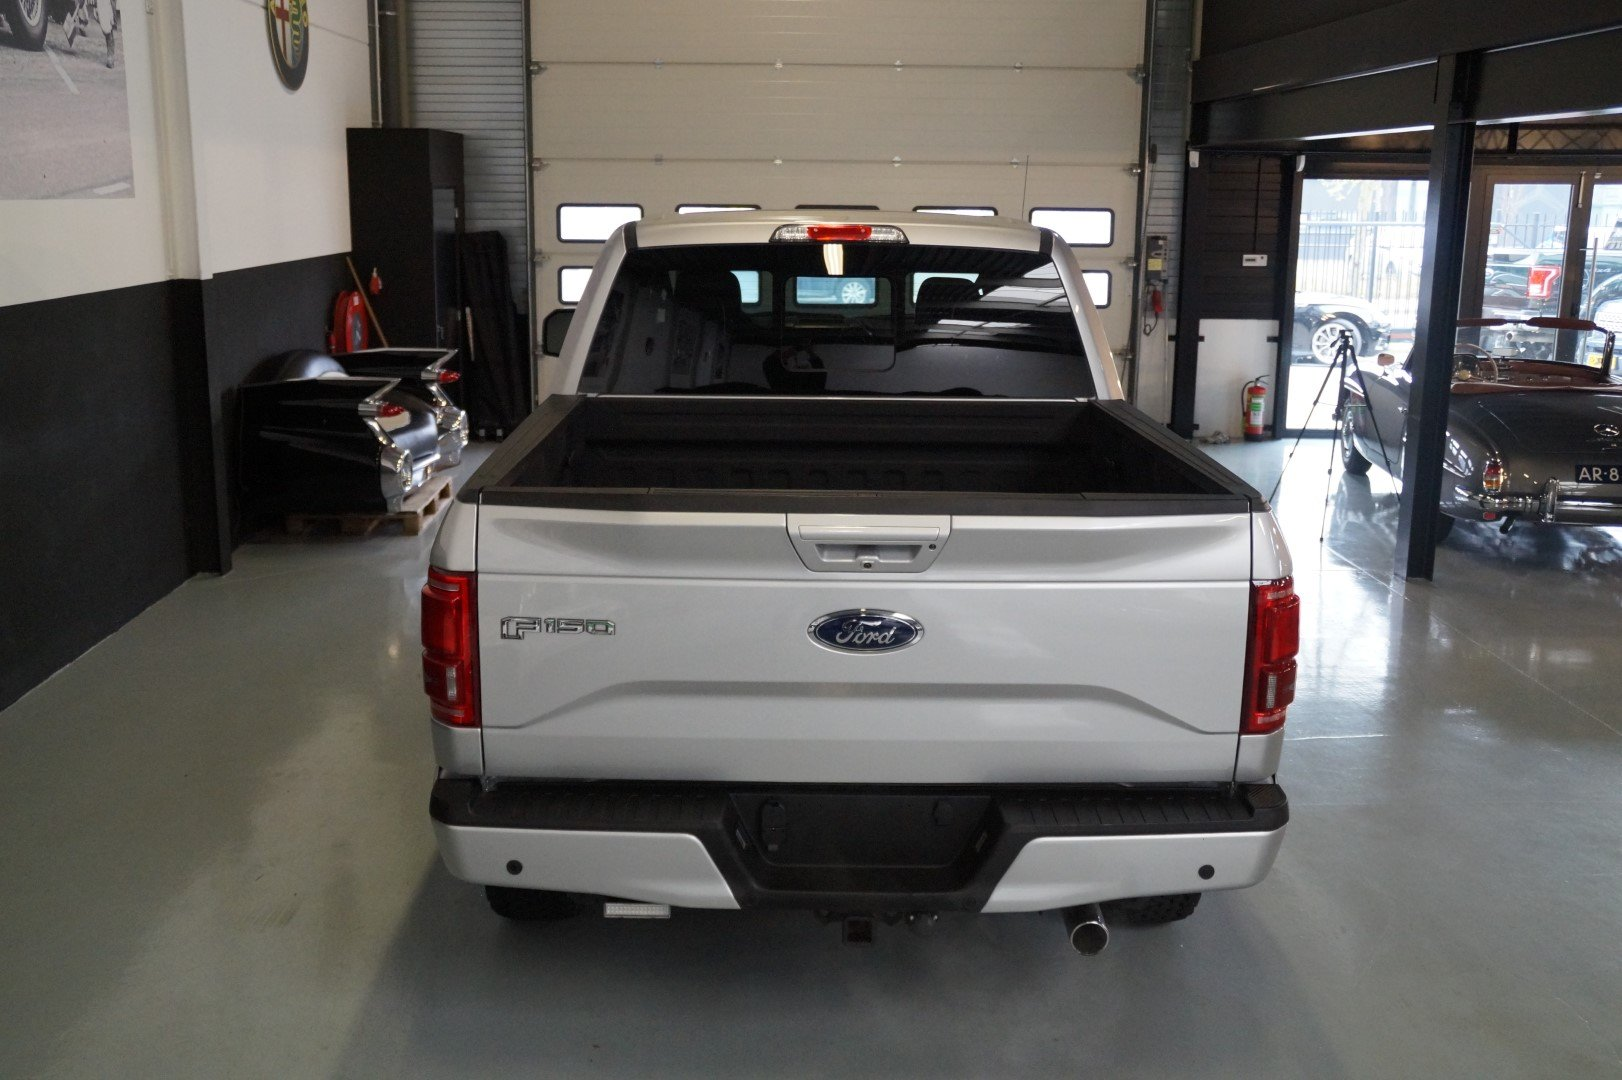 FORD USA F-150 F150 3.5 V6 Lariat 4X4 (2015) For Sale (picture 3 of 6)